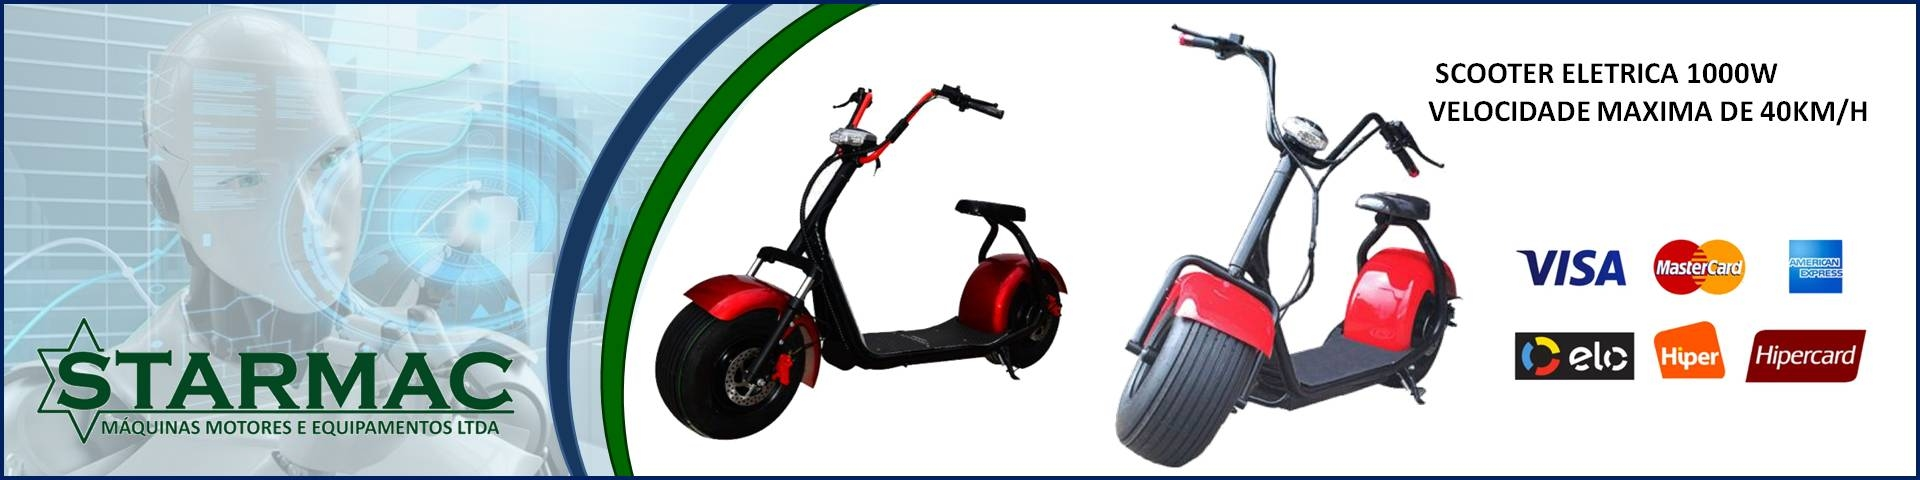 scooter 2019 2